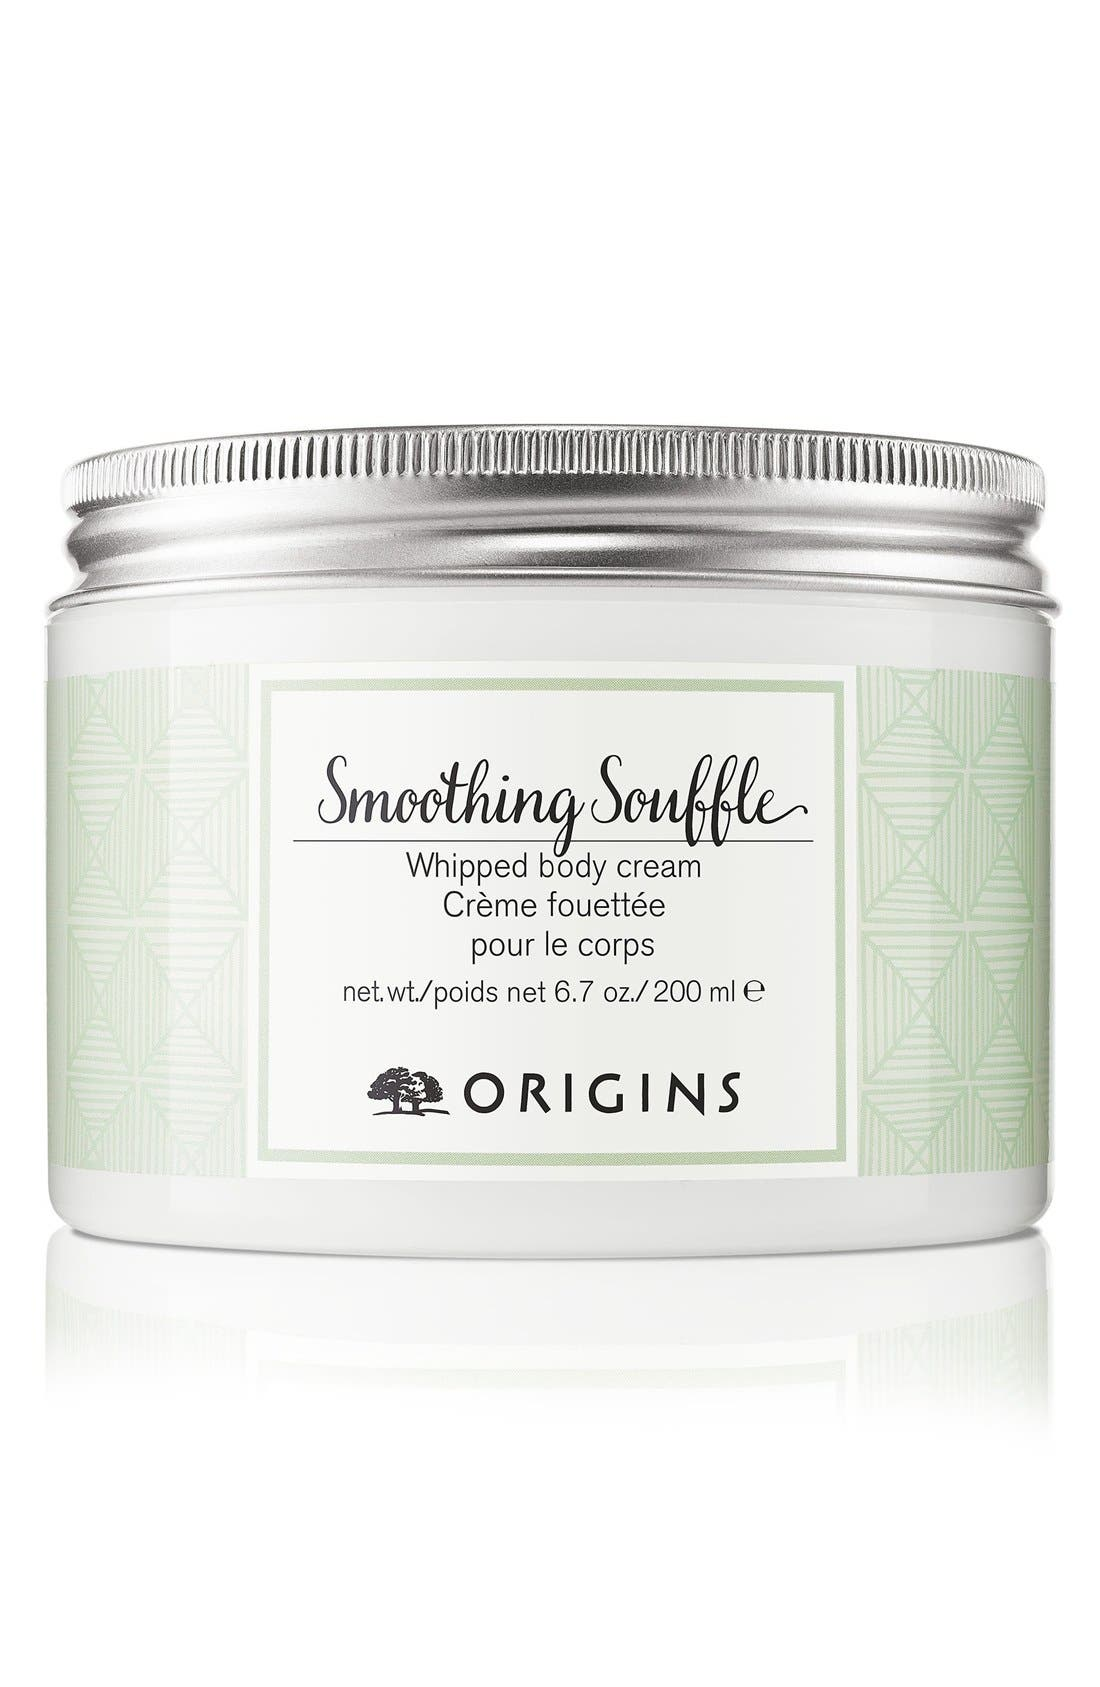 Smoothing Soufflé Whipped Body Cream,                             Main thumbnail 1, color,                             NO COLOR